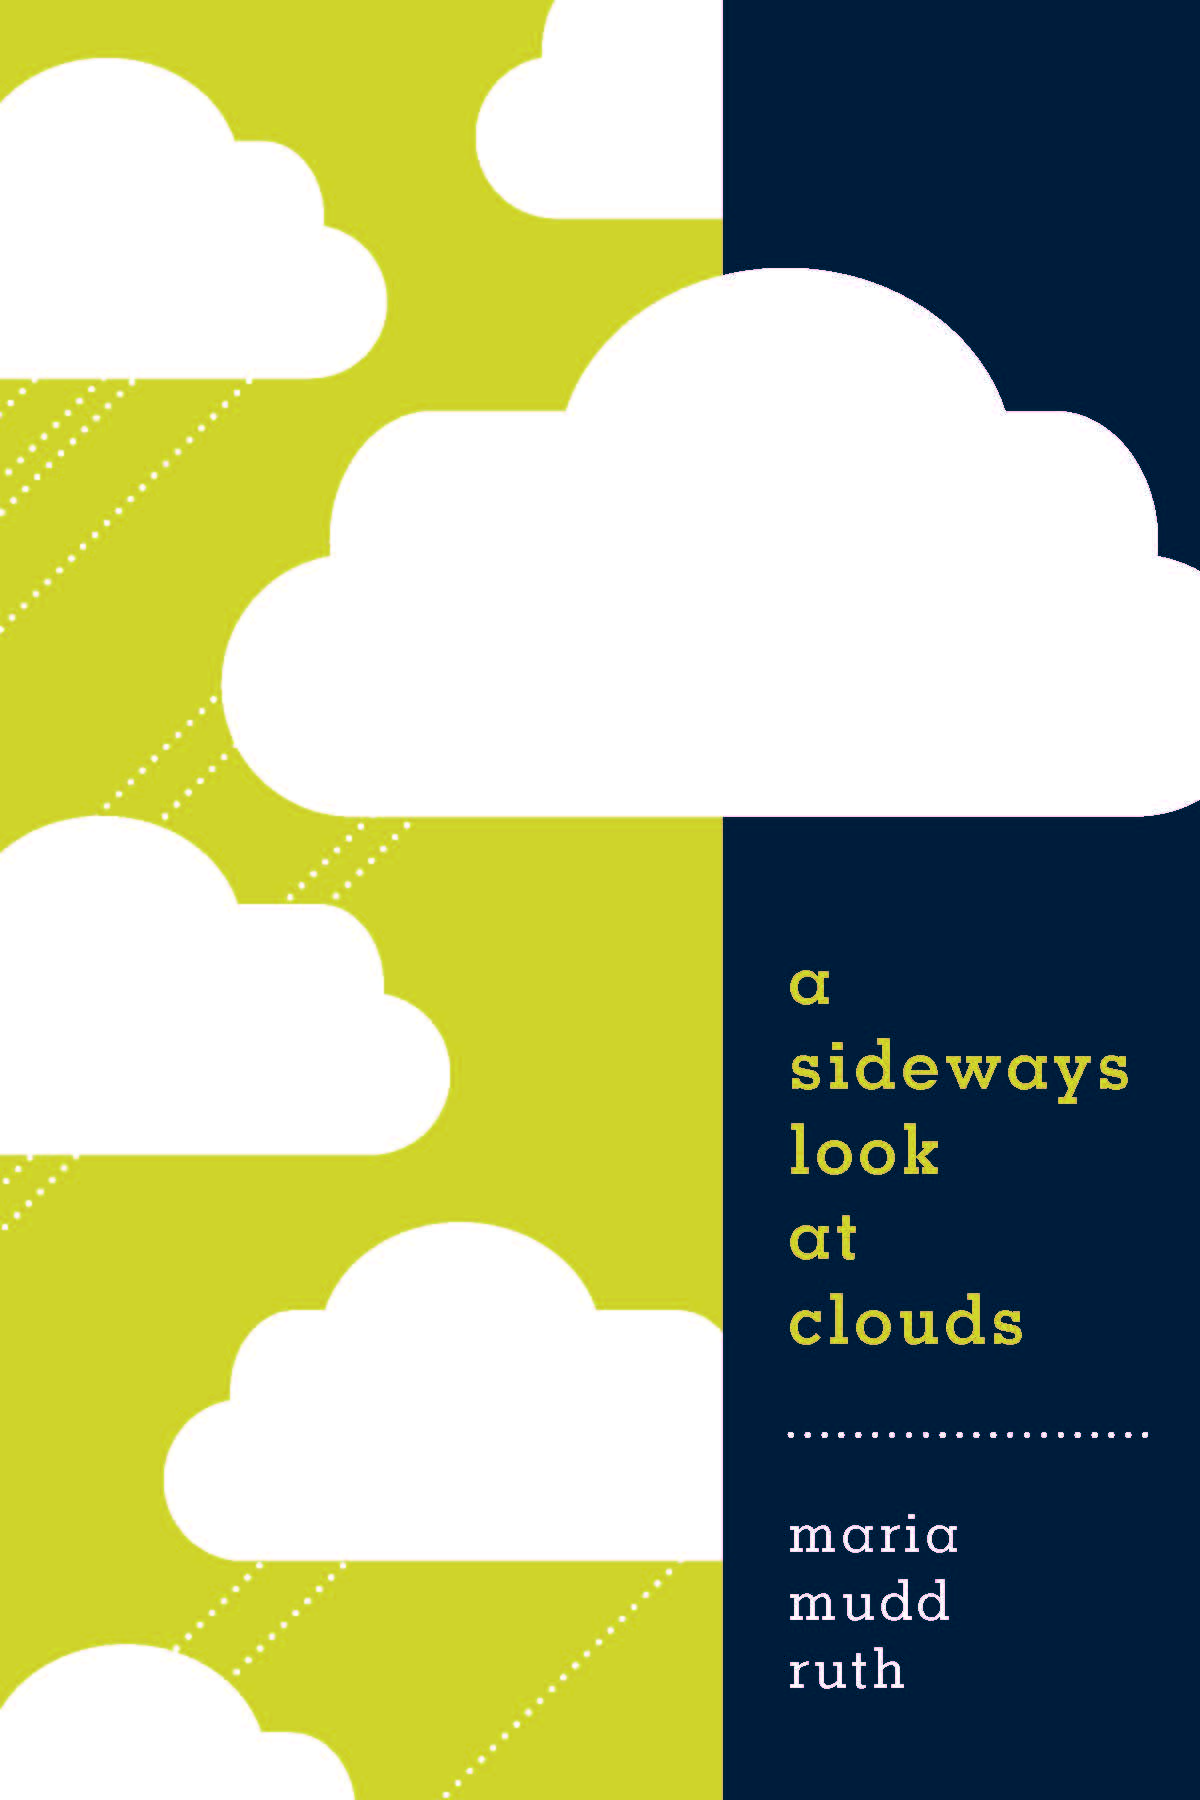 SidewaysLookClouds_cover draft copy.jpg